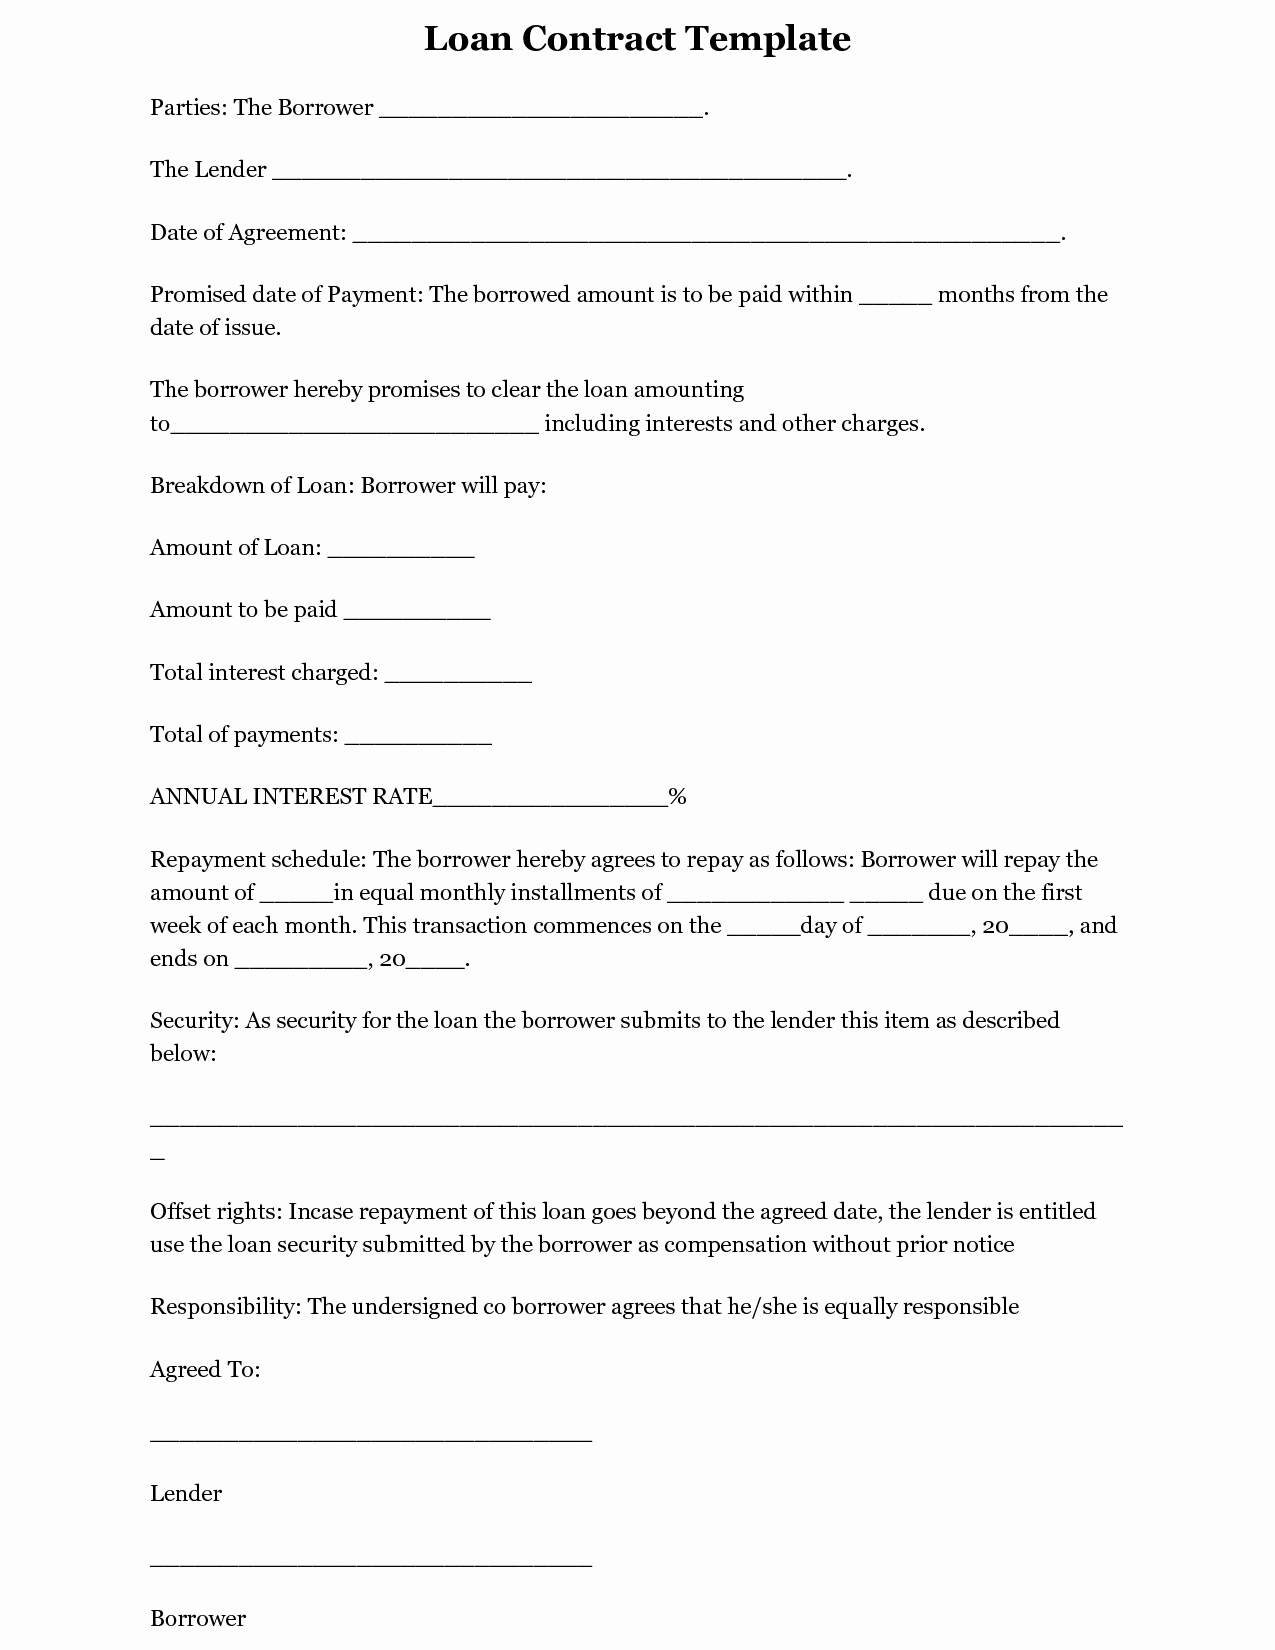 Loan Contract Template Free Beautiful Printable Sample Loan Template form